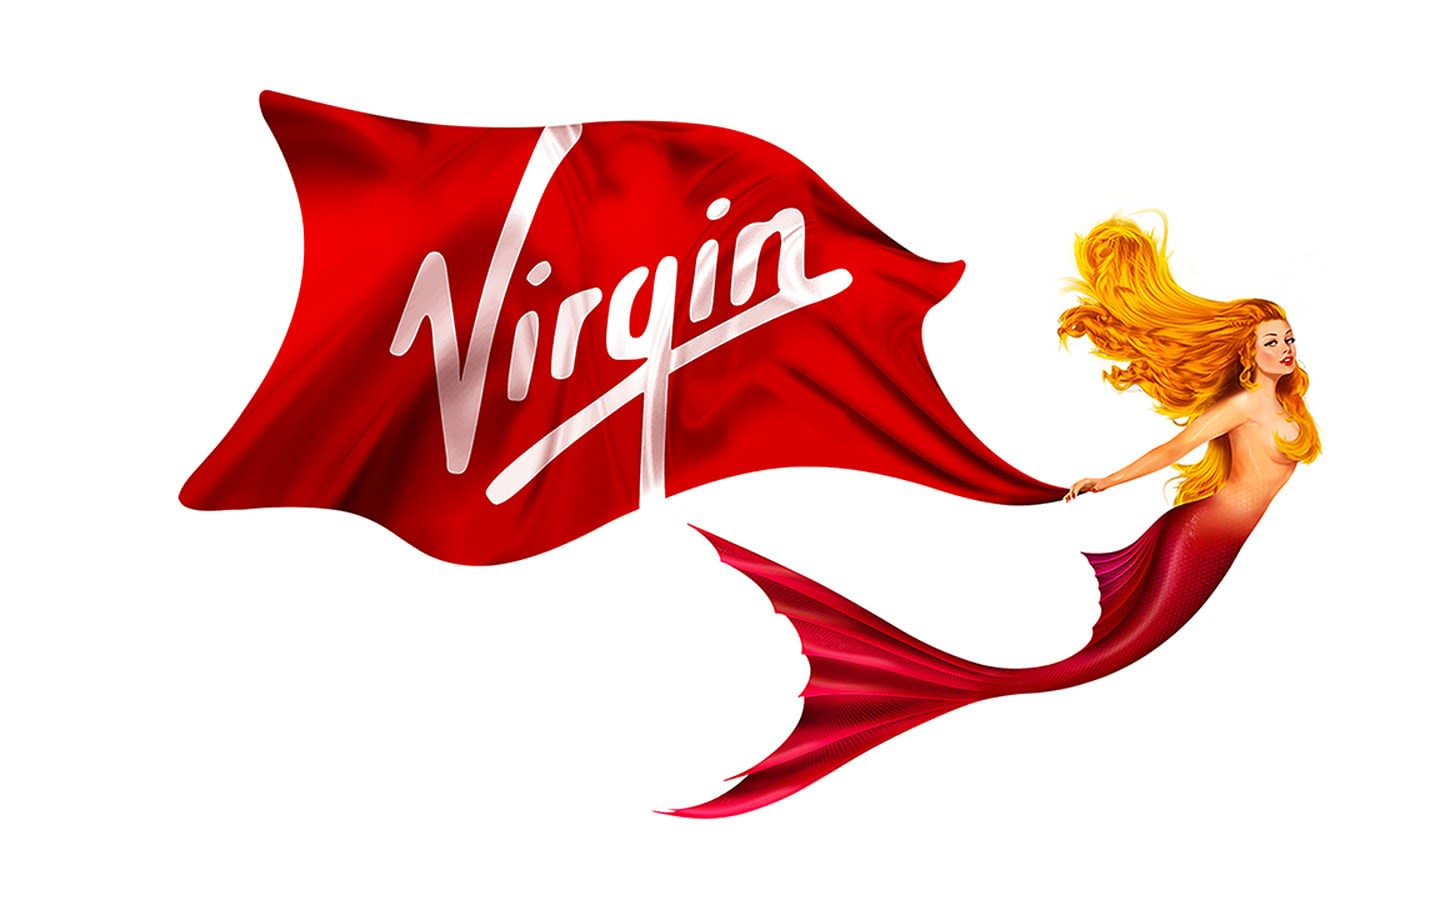 Virgin Voyages Scarlet Lady mermaid icon